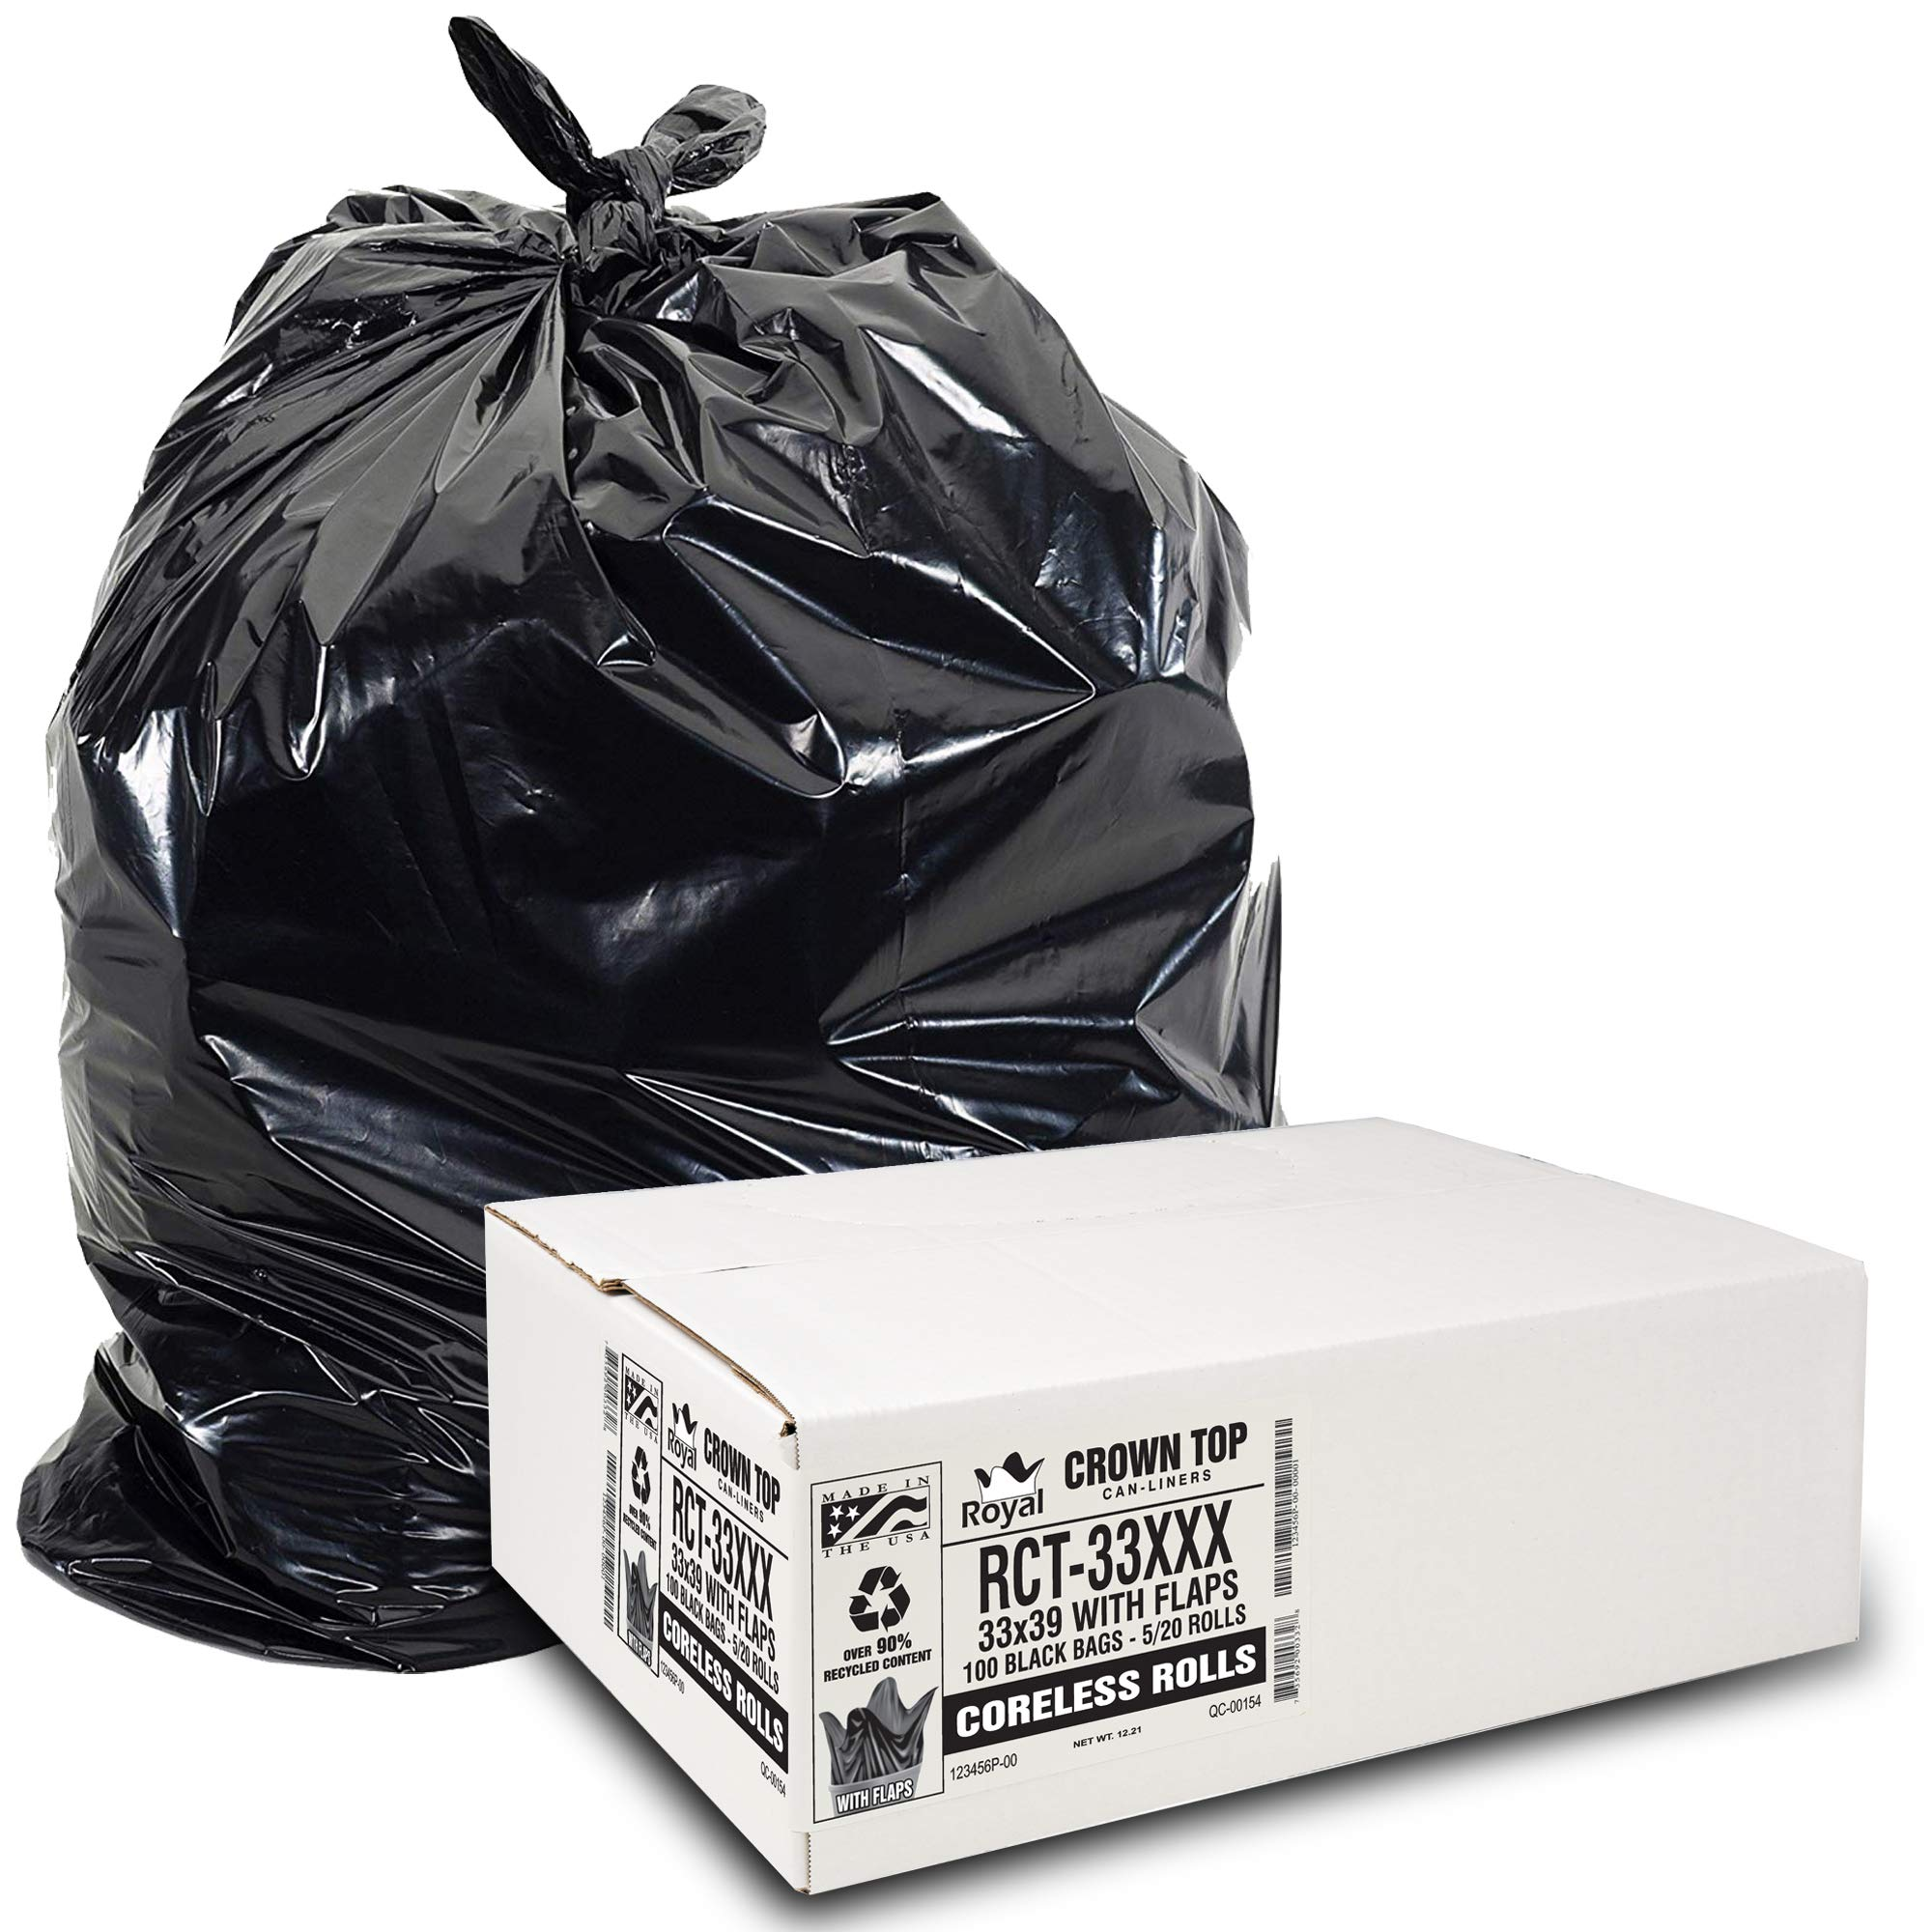 Heavy Duty 33 Gallon Trash Bags (Huge 100 Ct. /w Flap Ties) - 2 MIL equiv. Thick Gauge Large Black Plastic Garbage Liners for Kitchen, Home. Outdoor, Lawn, Yard, Contractors, Brute/Rubbermaid cans